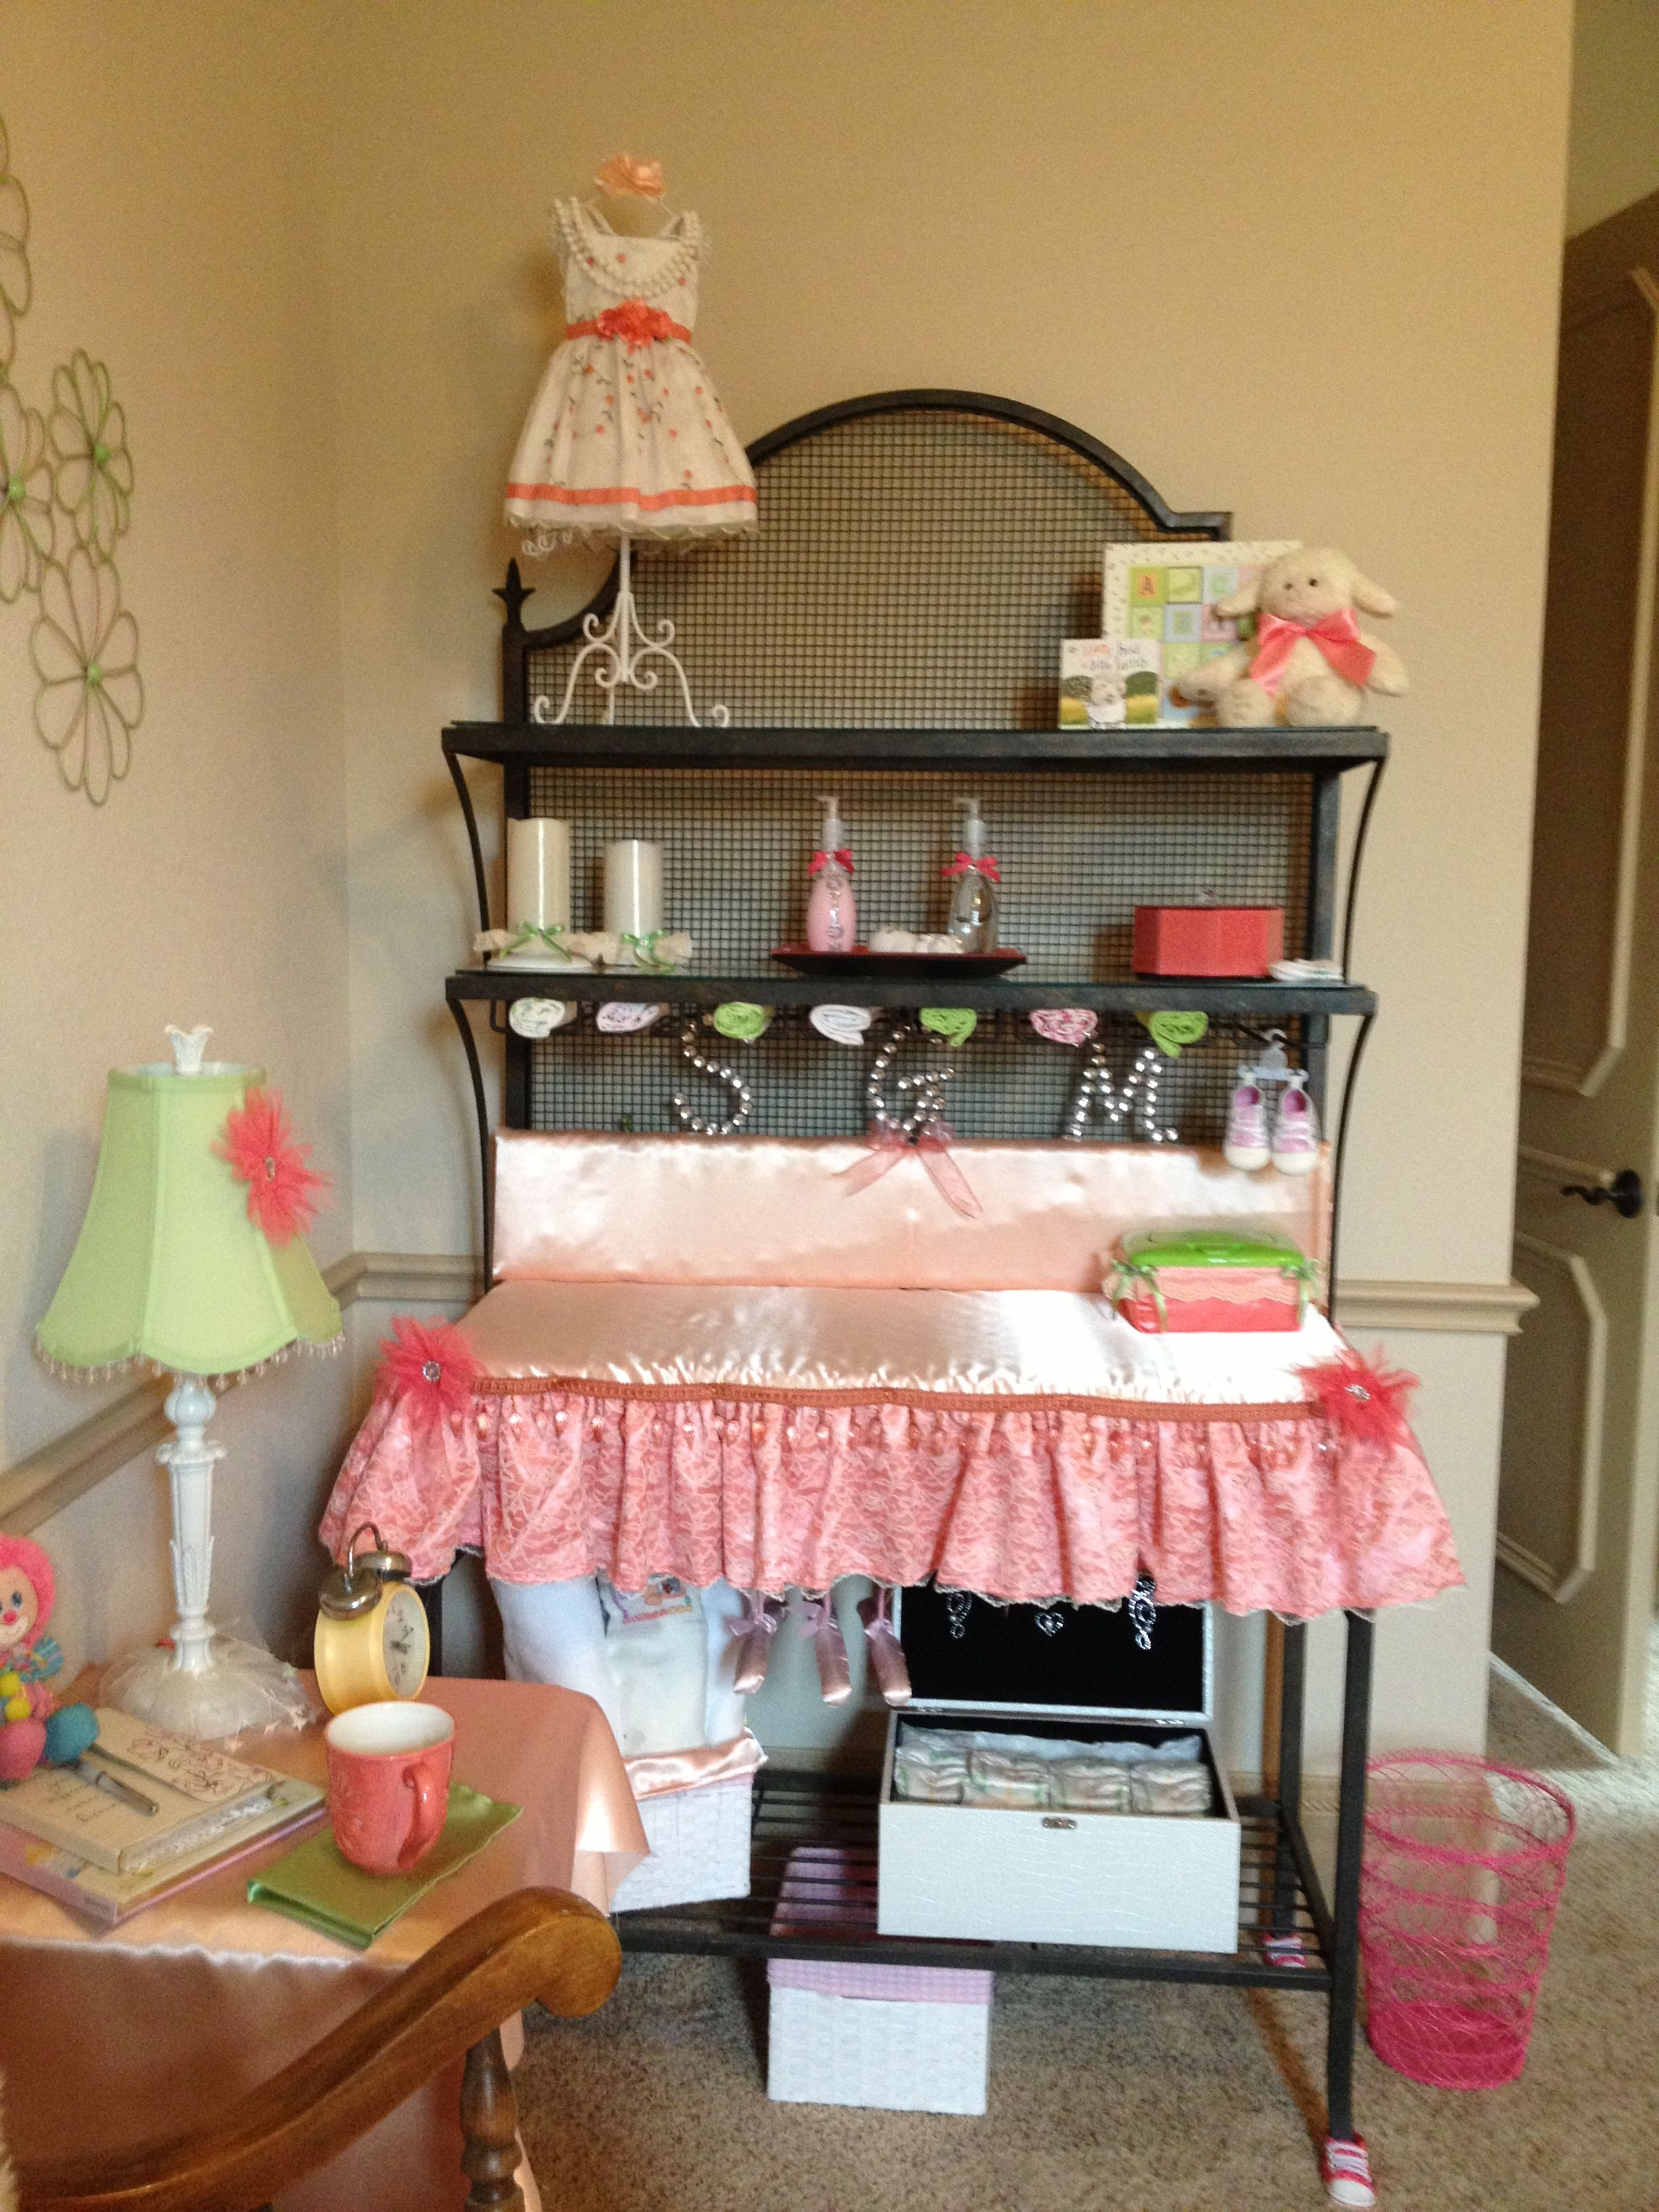 Bakers Rack Turned Baby Changing Table Came Up With This Idea When